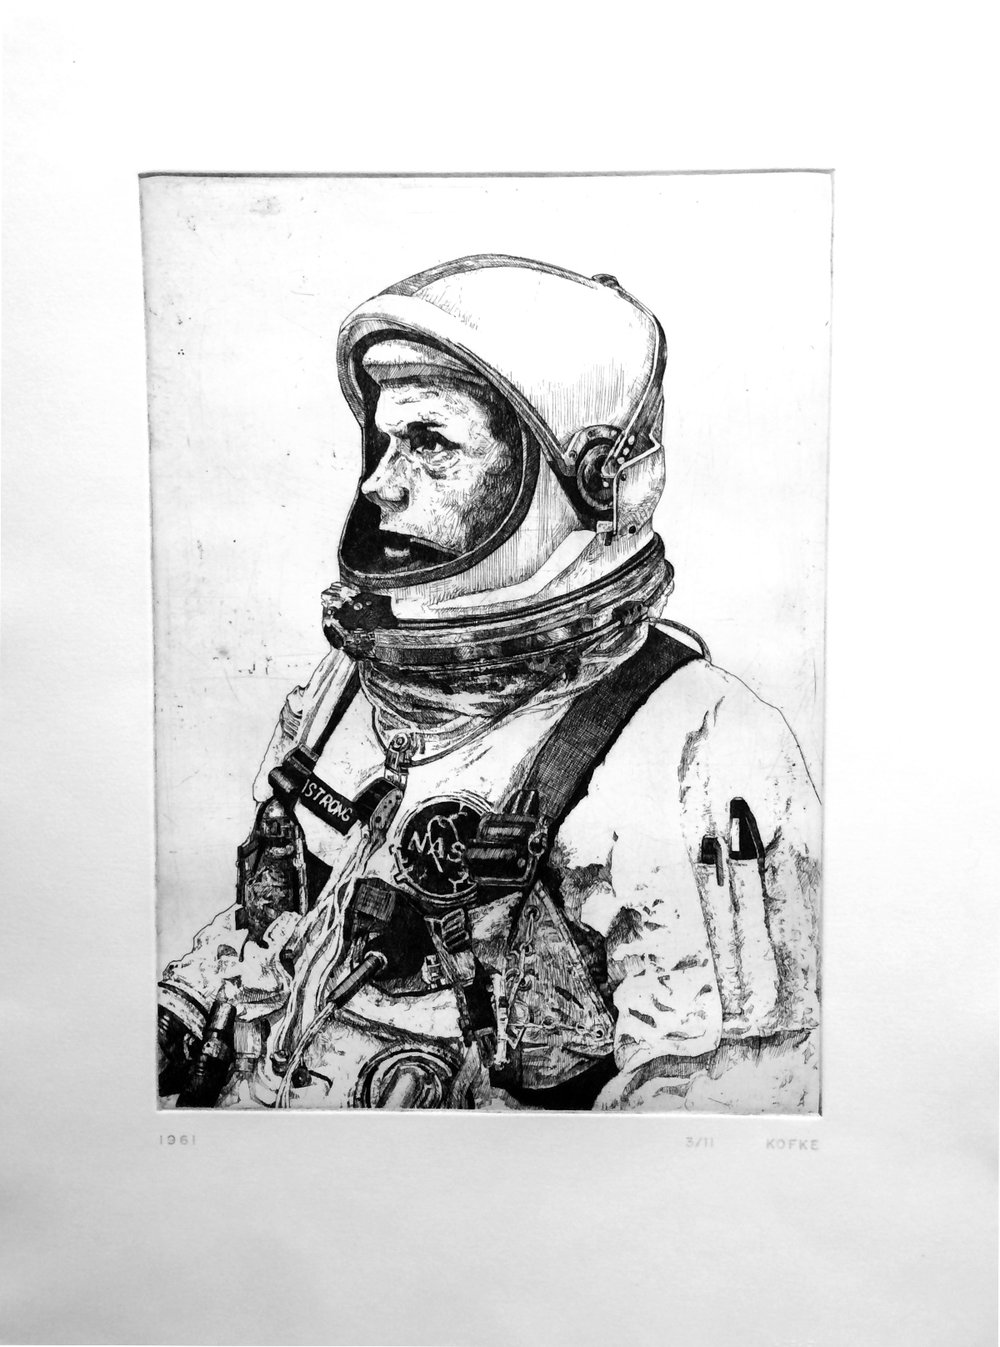 1961-etching-edition-of-11-22-x-16-inches-JKO-056G.jpg